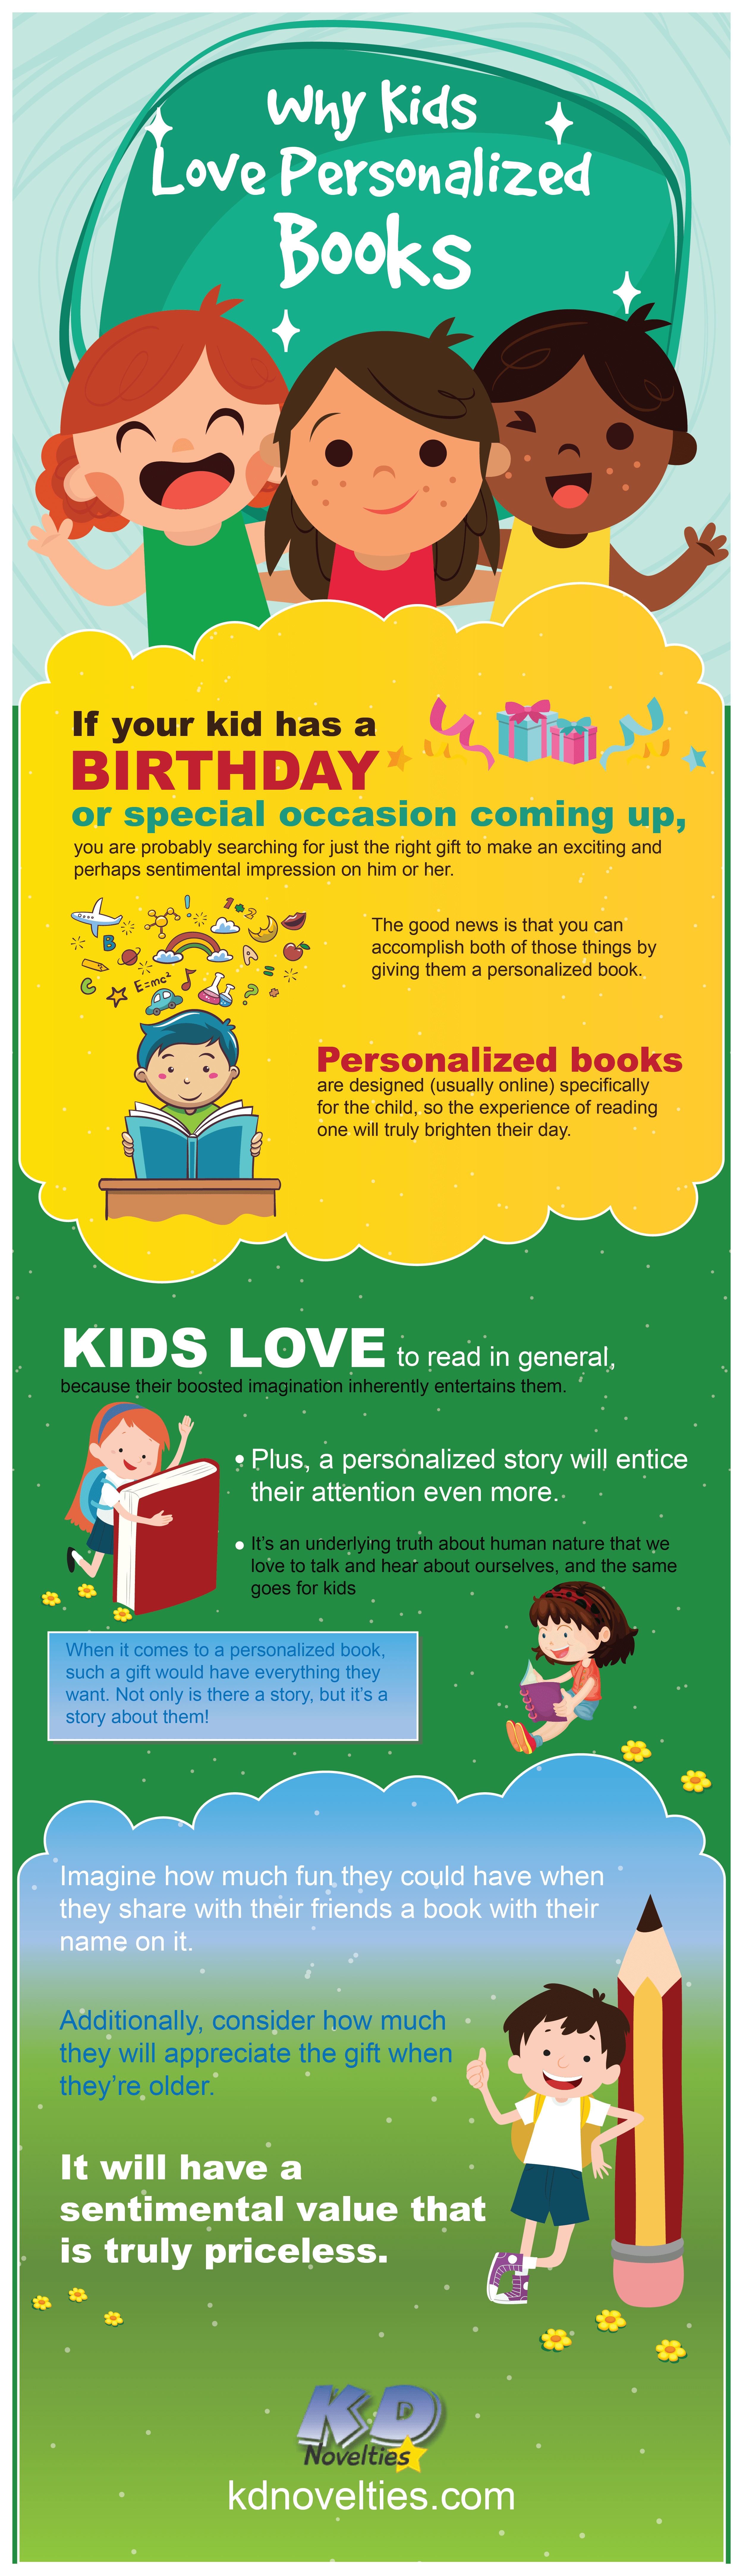 Why Kids Love Personalized Books Infographic